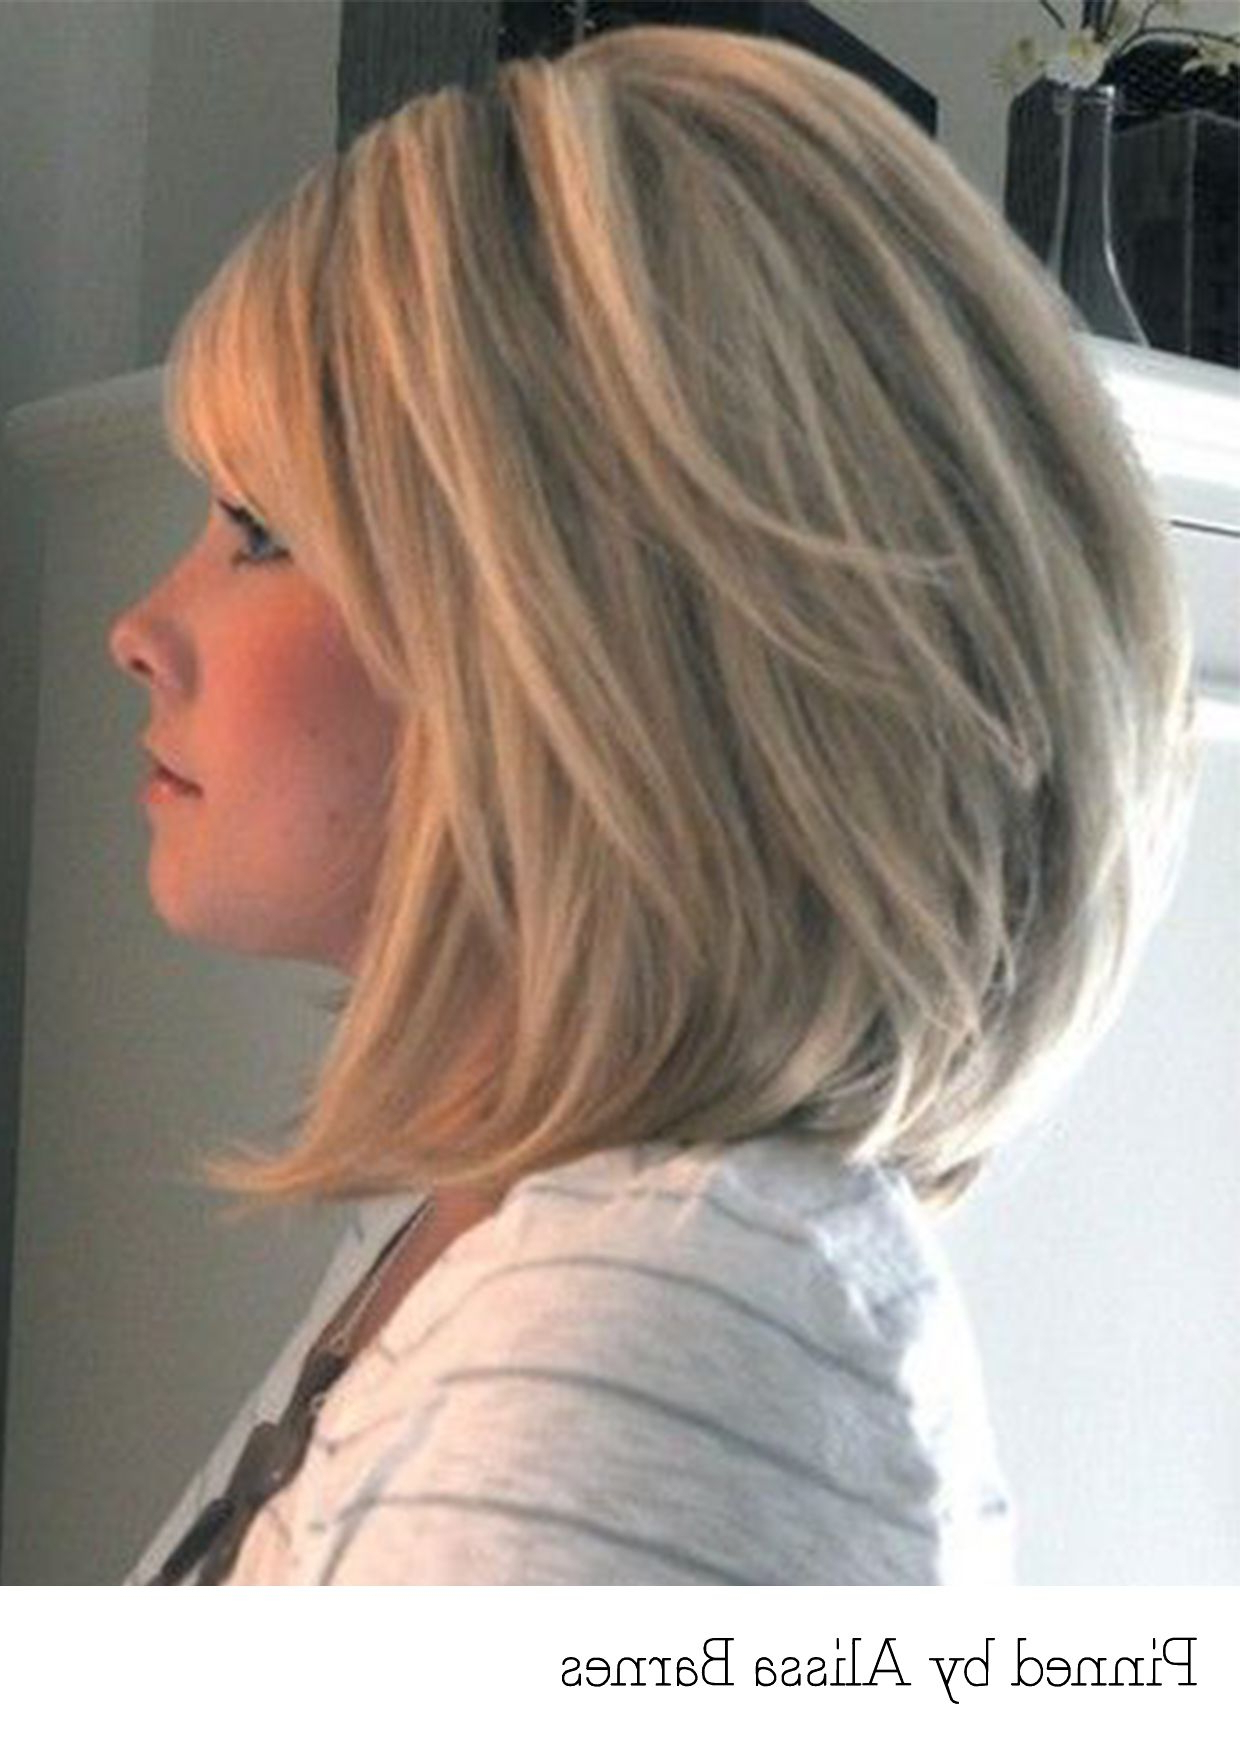 Most Popular Layered And Outward Feathered Bob Hairstyles With Bangs Throughout Pin On Cuts And Colors (View 2 of 20)